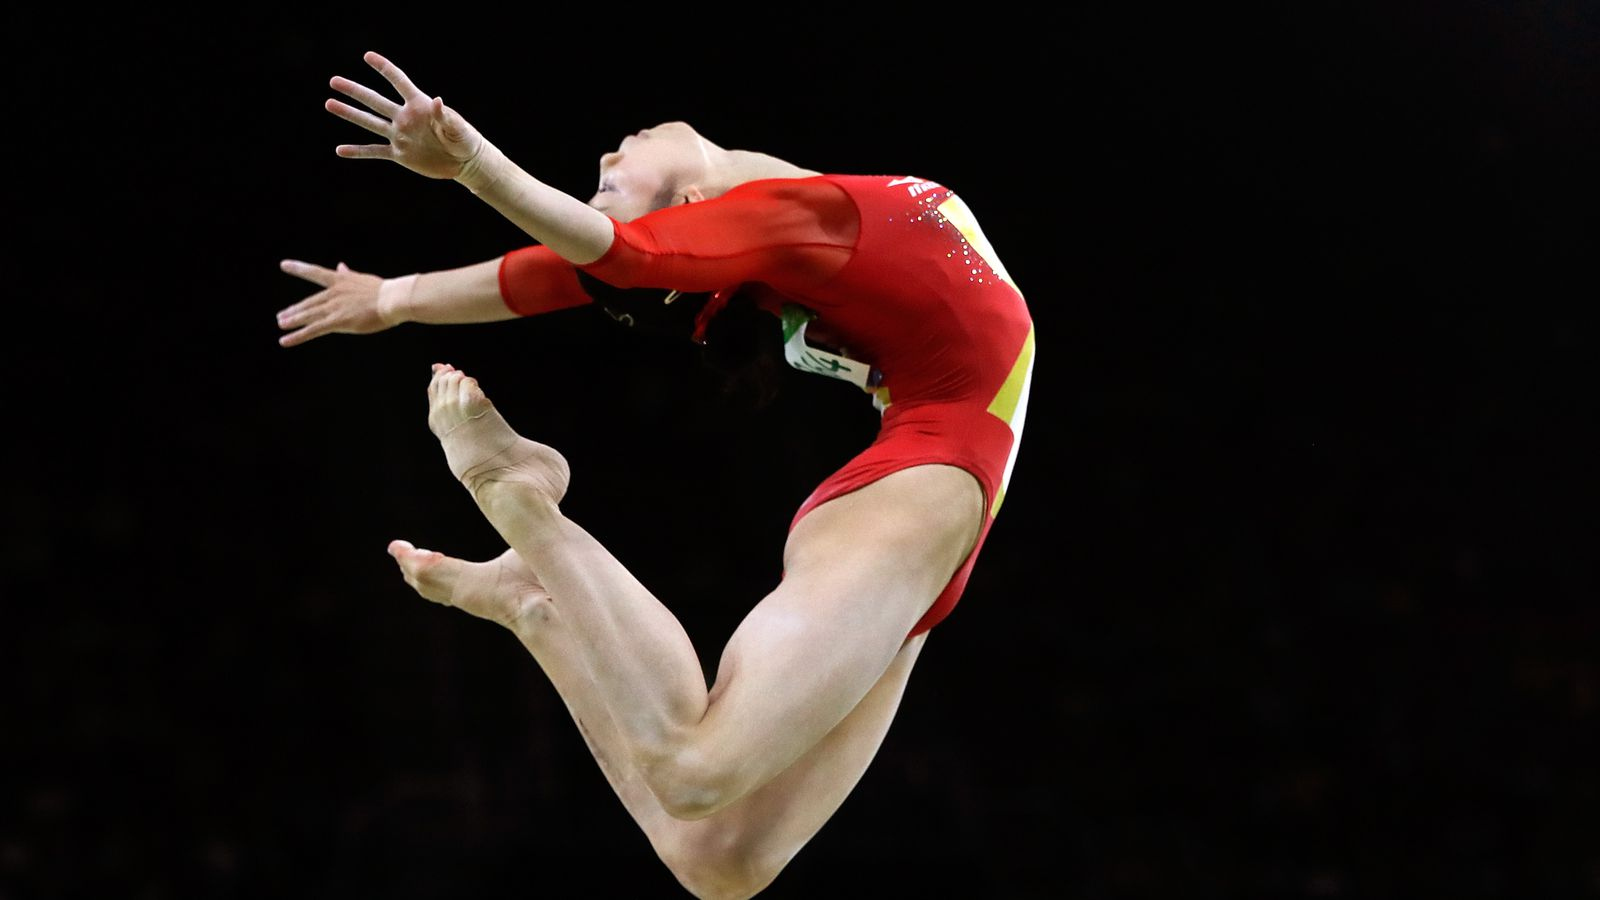 biomechanics of gymnastics Keilea bullard mr del graves (advisor) a biomechanical analysis of the gymnastics cartwheel this project required the comprehension and utilization of various biomechanical principles that were.